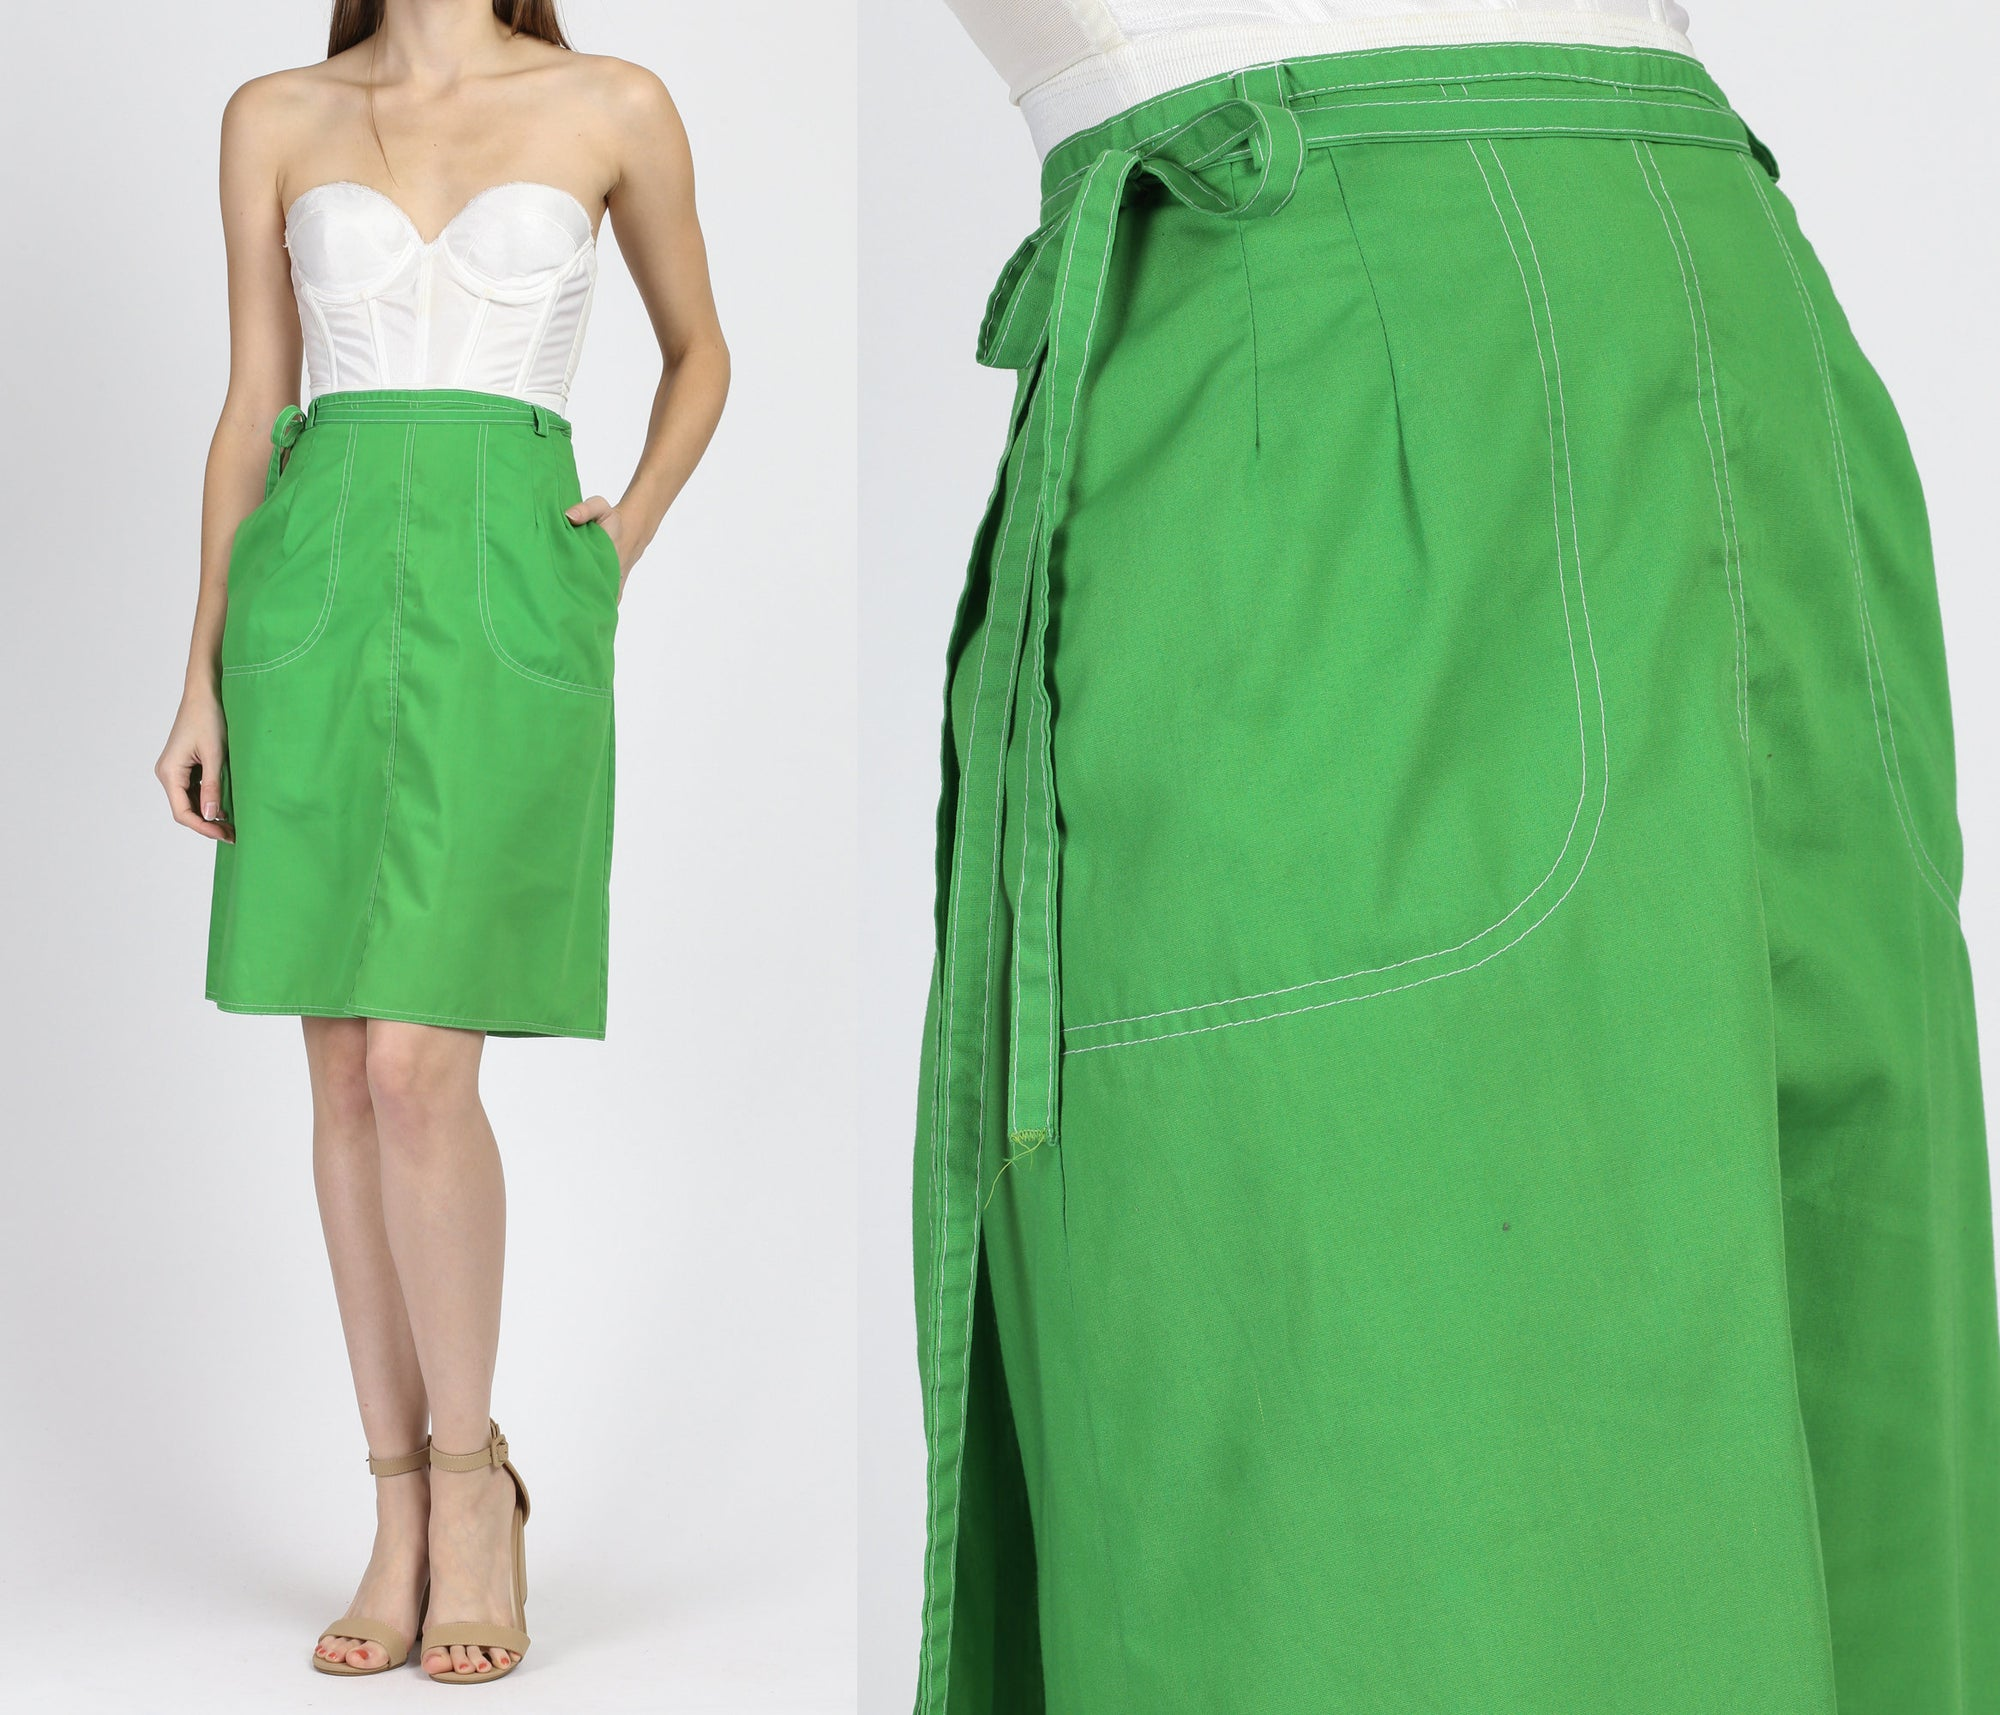 70s Kelly Green High Waist Pocket Wrap Skirt - XS to Small